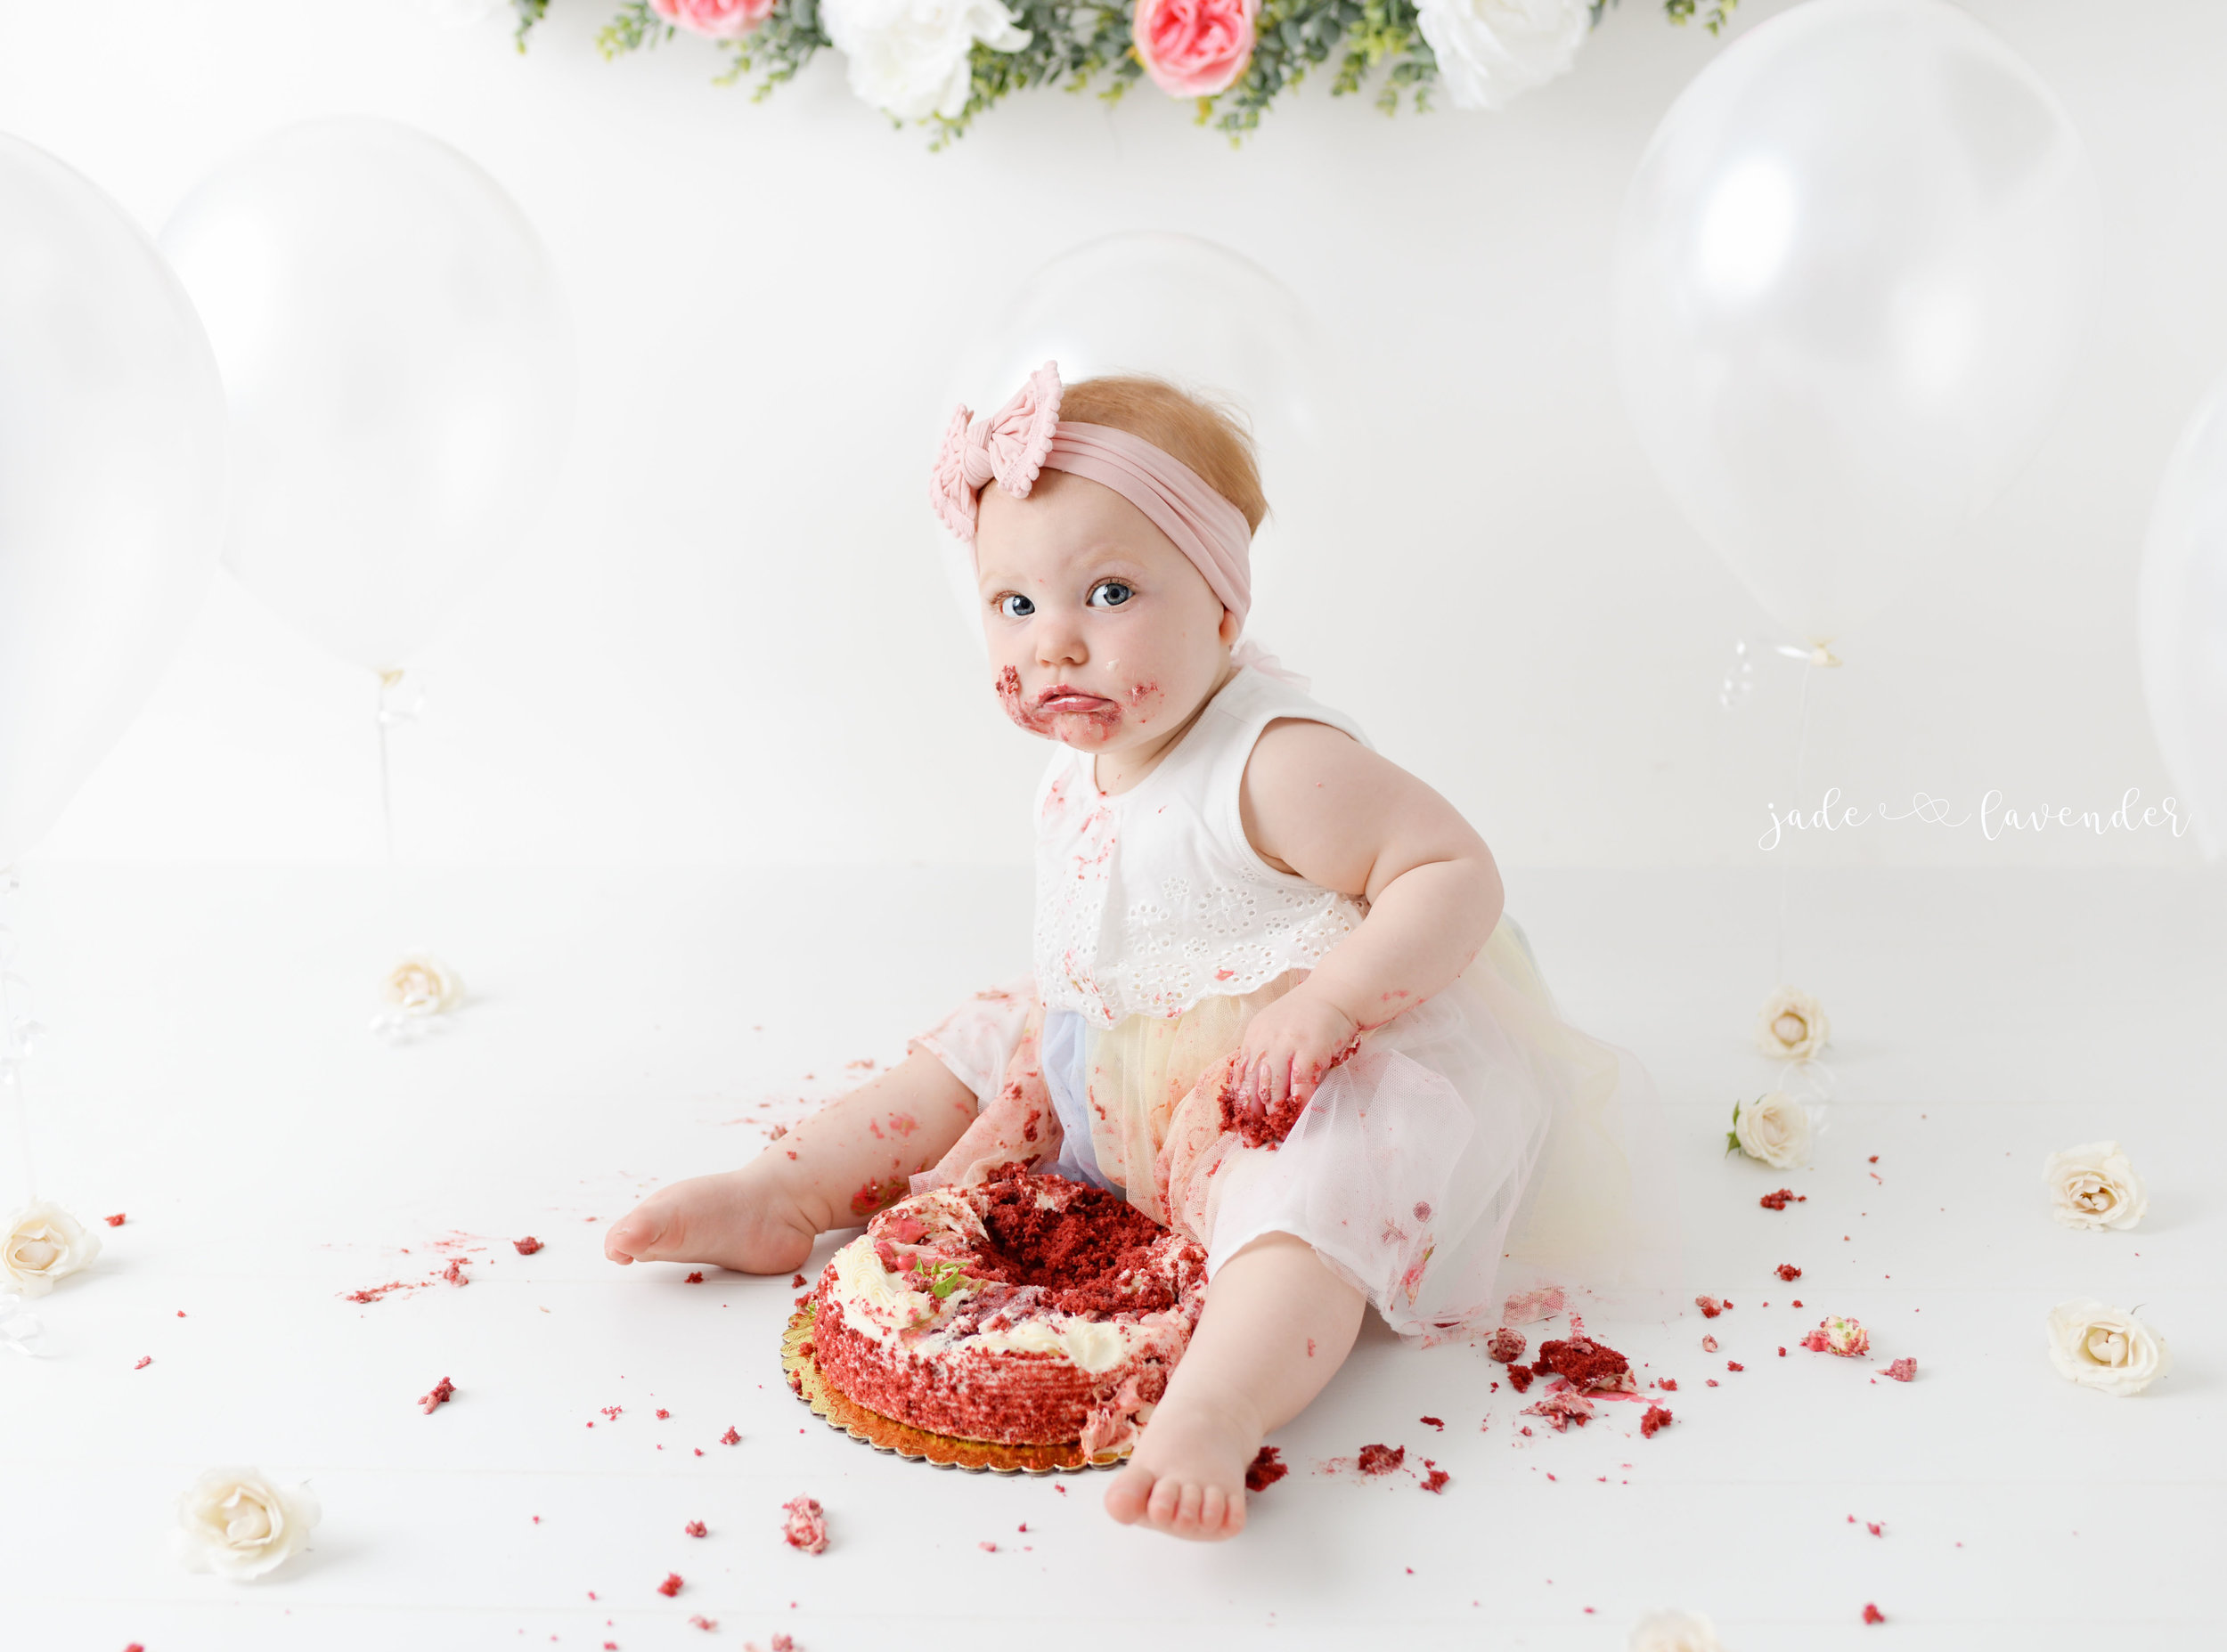 cake-smash-one-year-photos-baby-photography-newborn-infant-images-spokane-washington (6 of 6).jpg